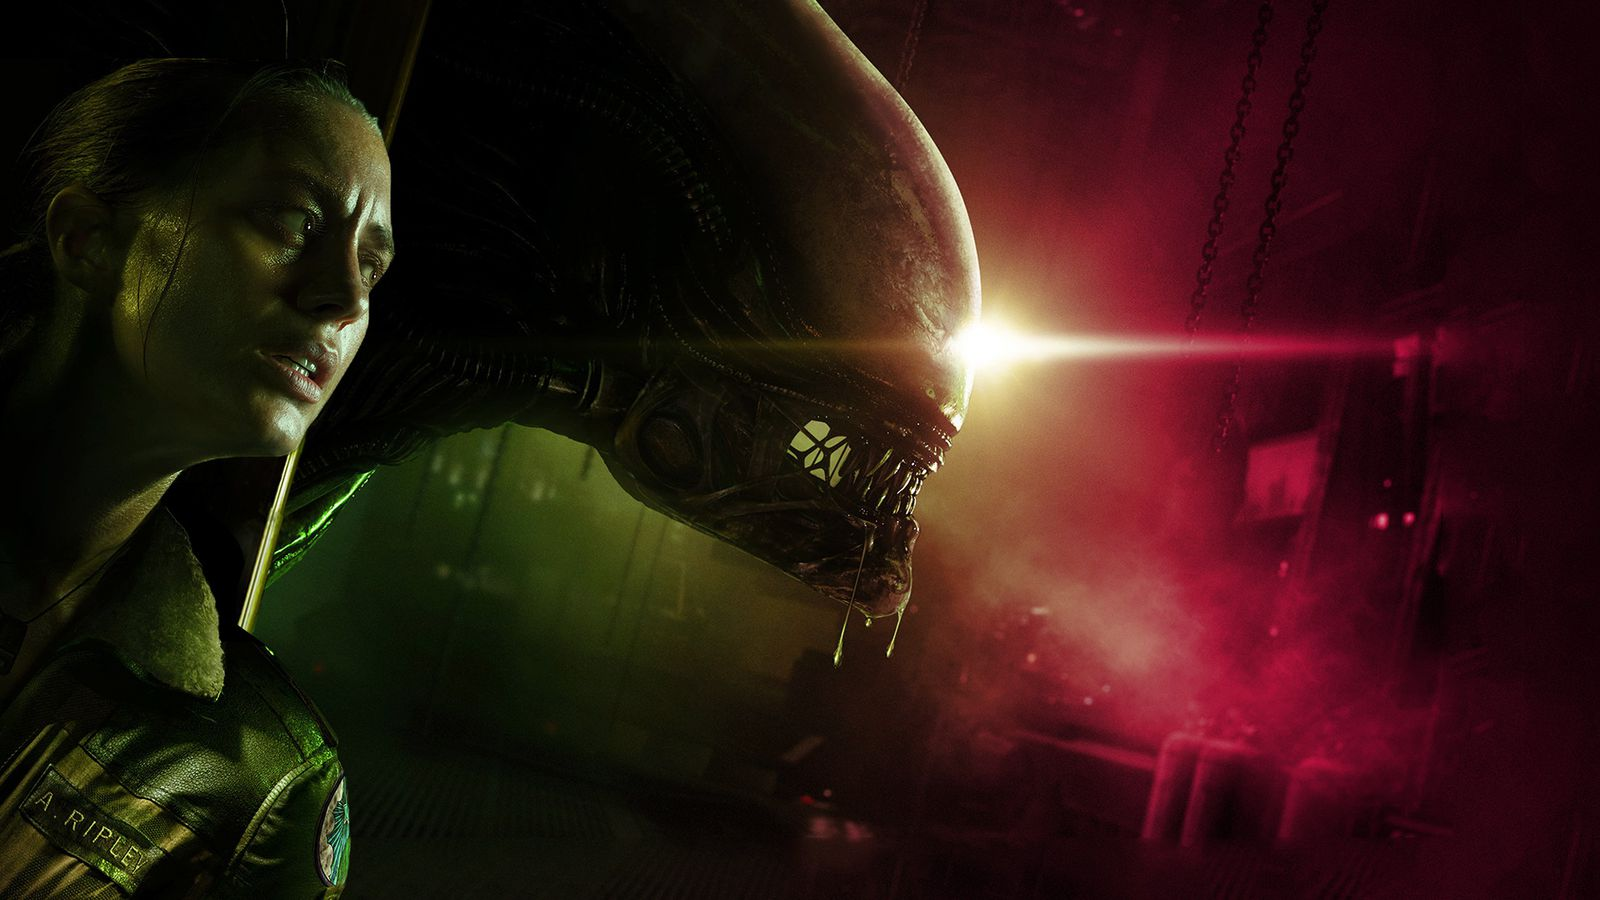 Fox is working on a new shooter in the Alien franchise